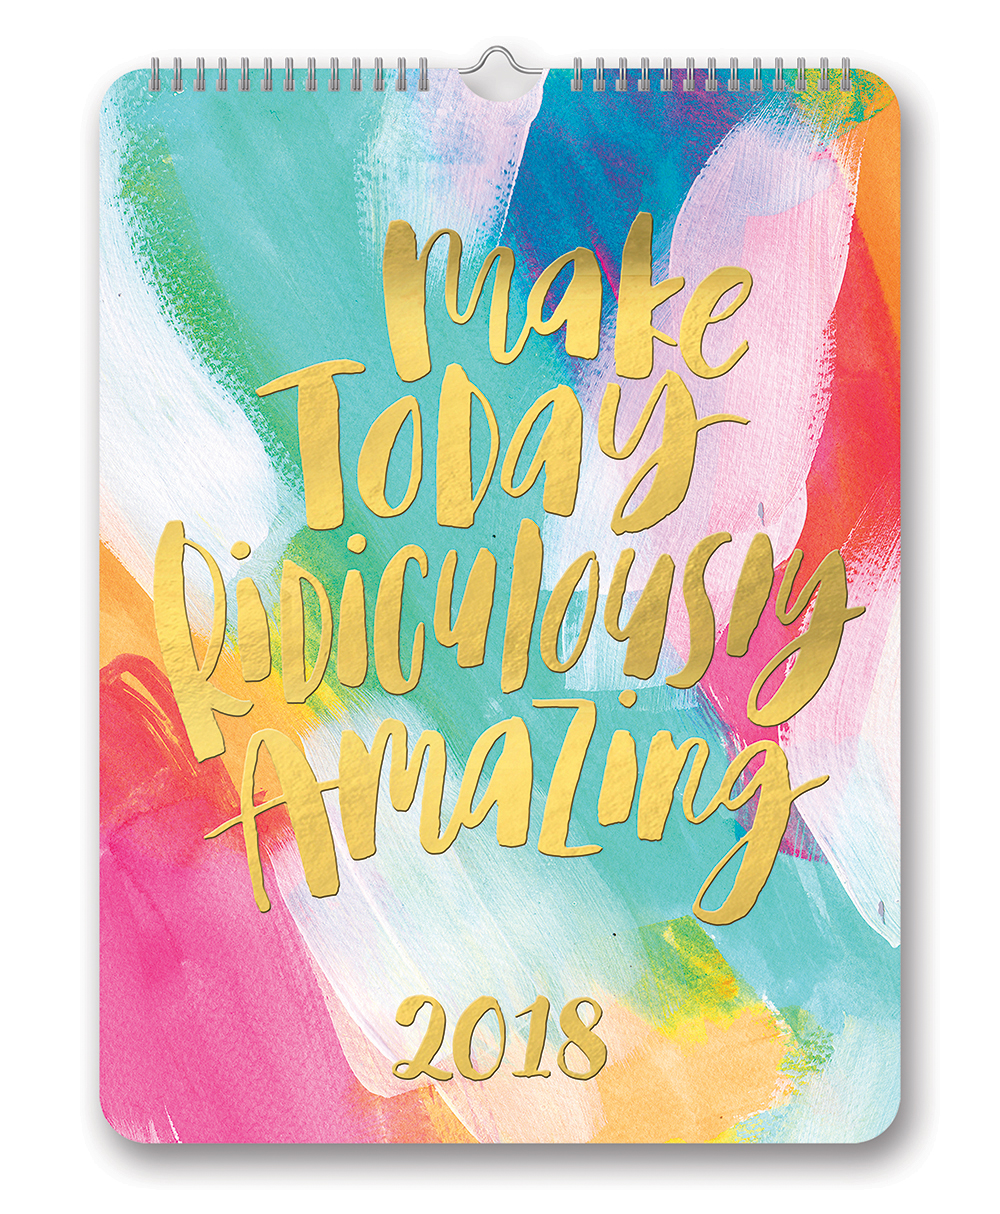 Make Today Ridiculously Amazing Poster Calendar 2018 by Orange Circle Studio 9781682581766